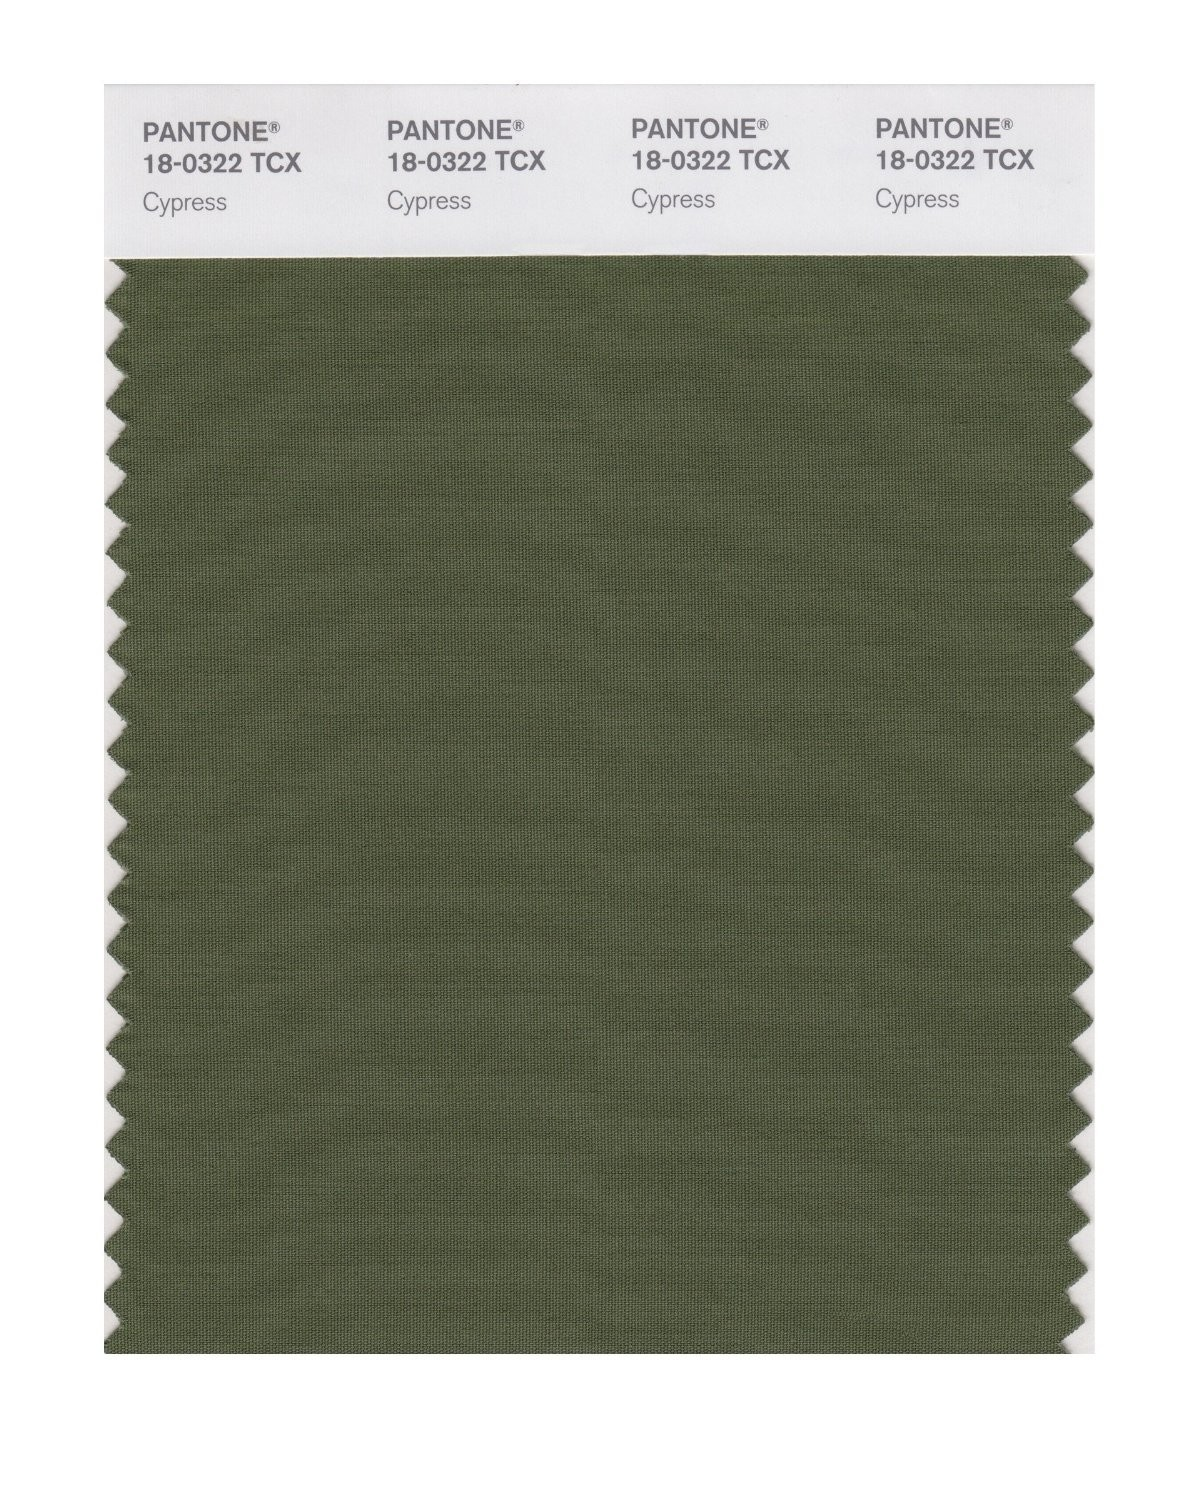 Pantone 18-0322 TCX Swatch Card Cypress